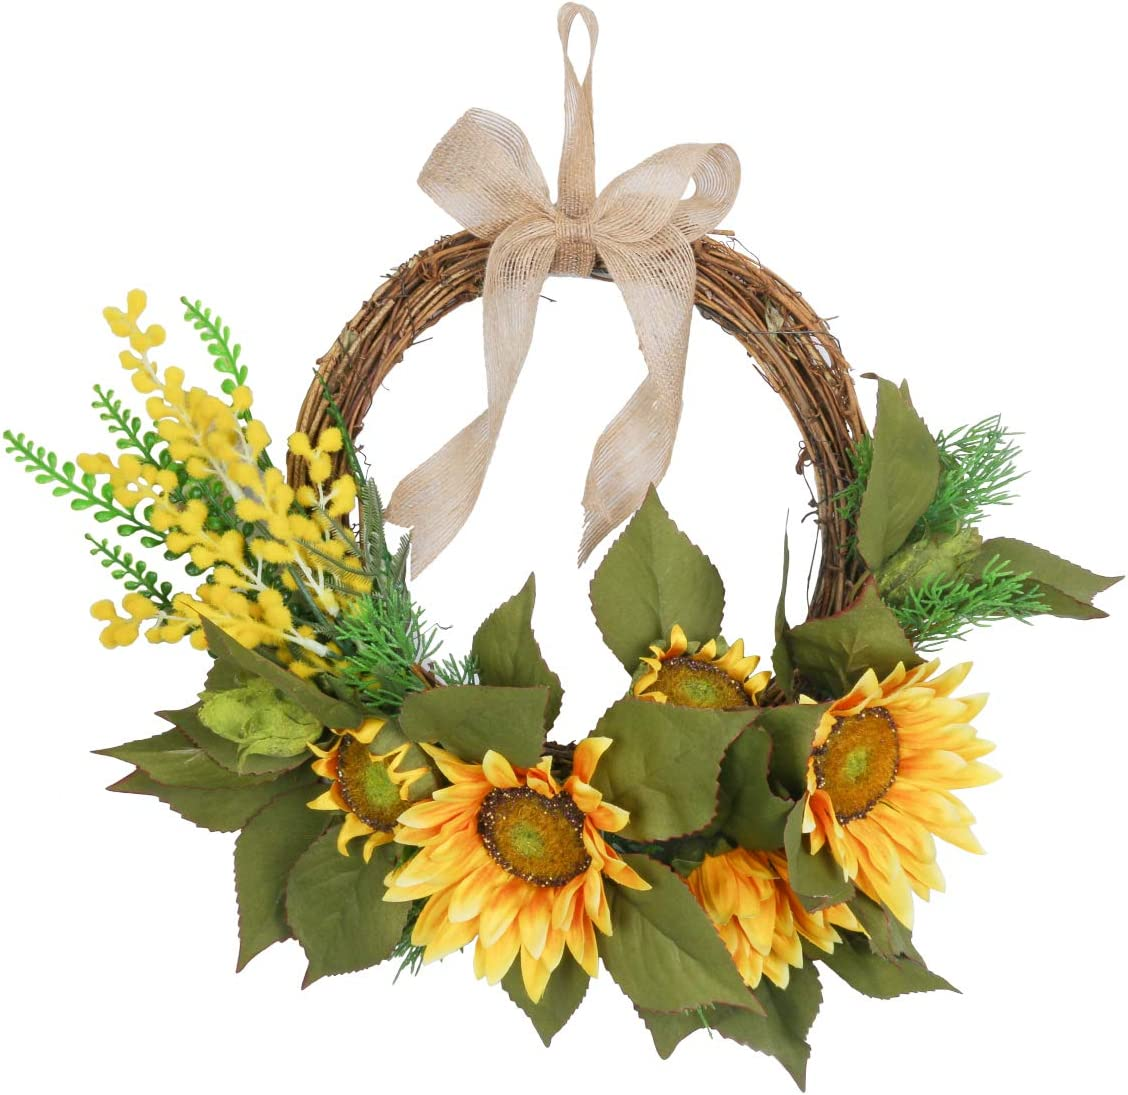 "HiiARug Artificial Sunflower Wreath, 15"" Yellow Door Wreath with Burlap Bow Green Leaves Floral Wreaths for Front Door Home Party Wall Wedding Party Farmhourse Decor (15"" Sunflower)"